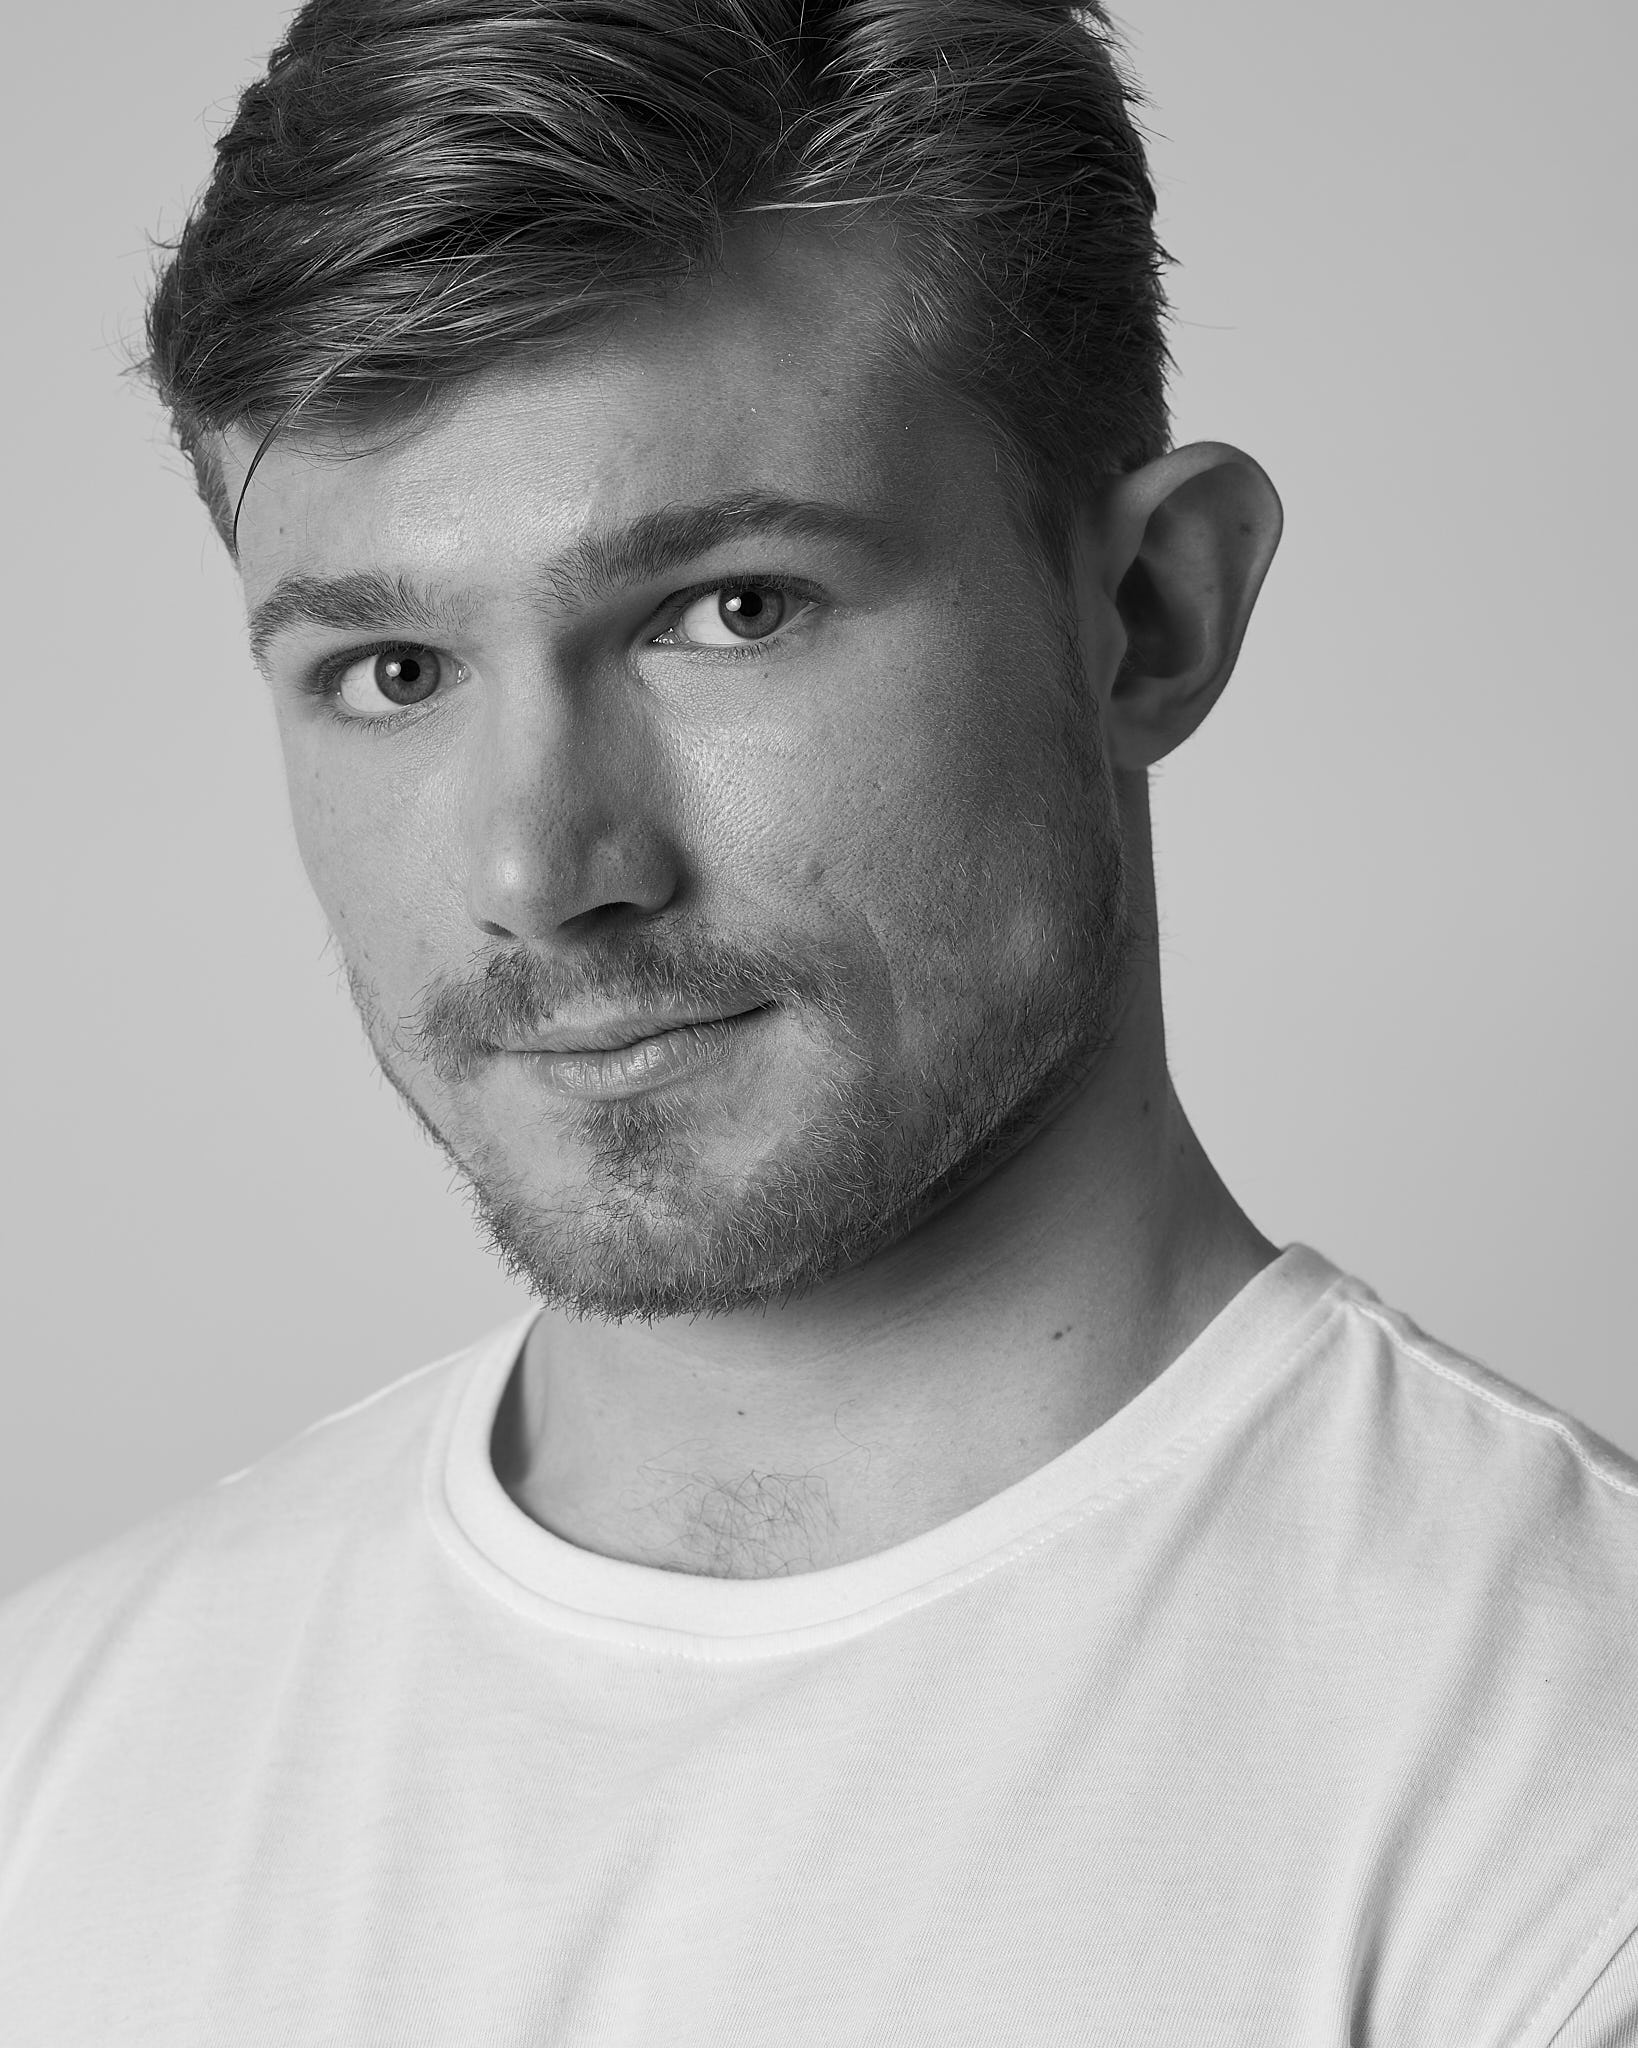 New HEAD SHOTS are in!